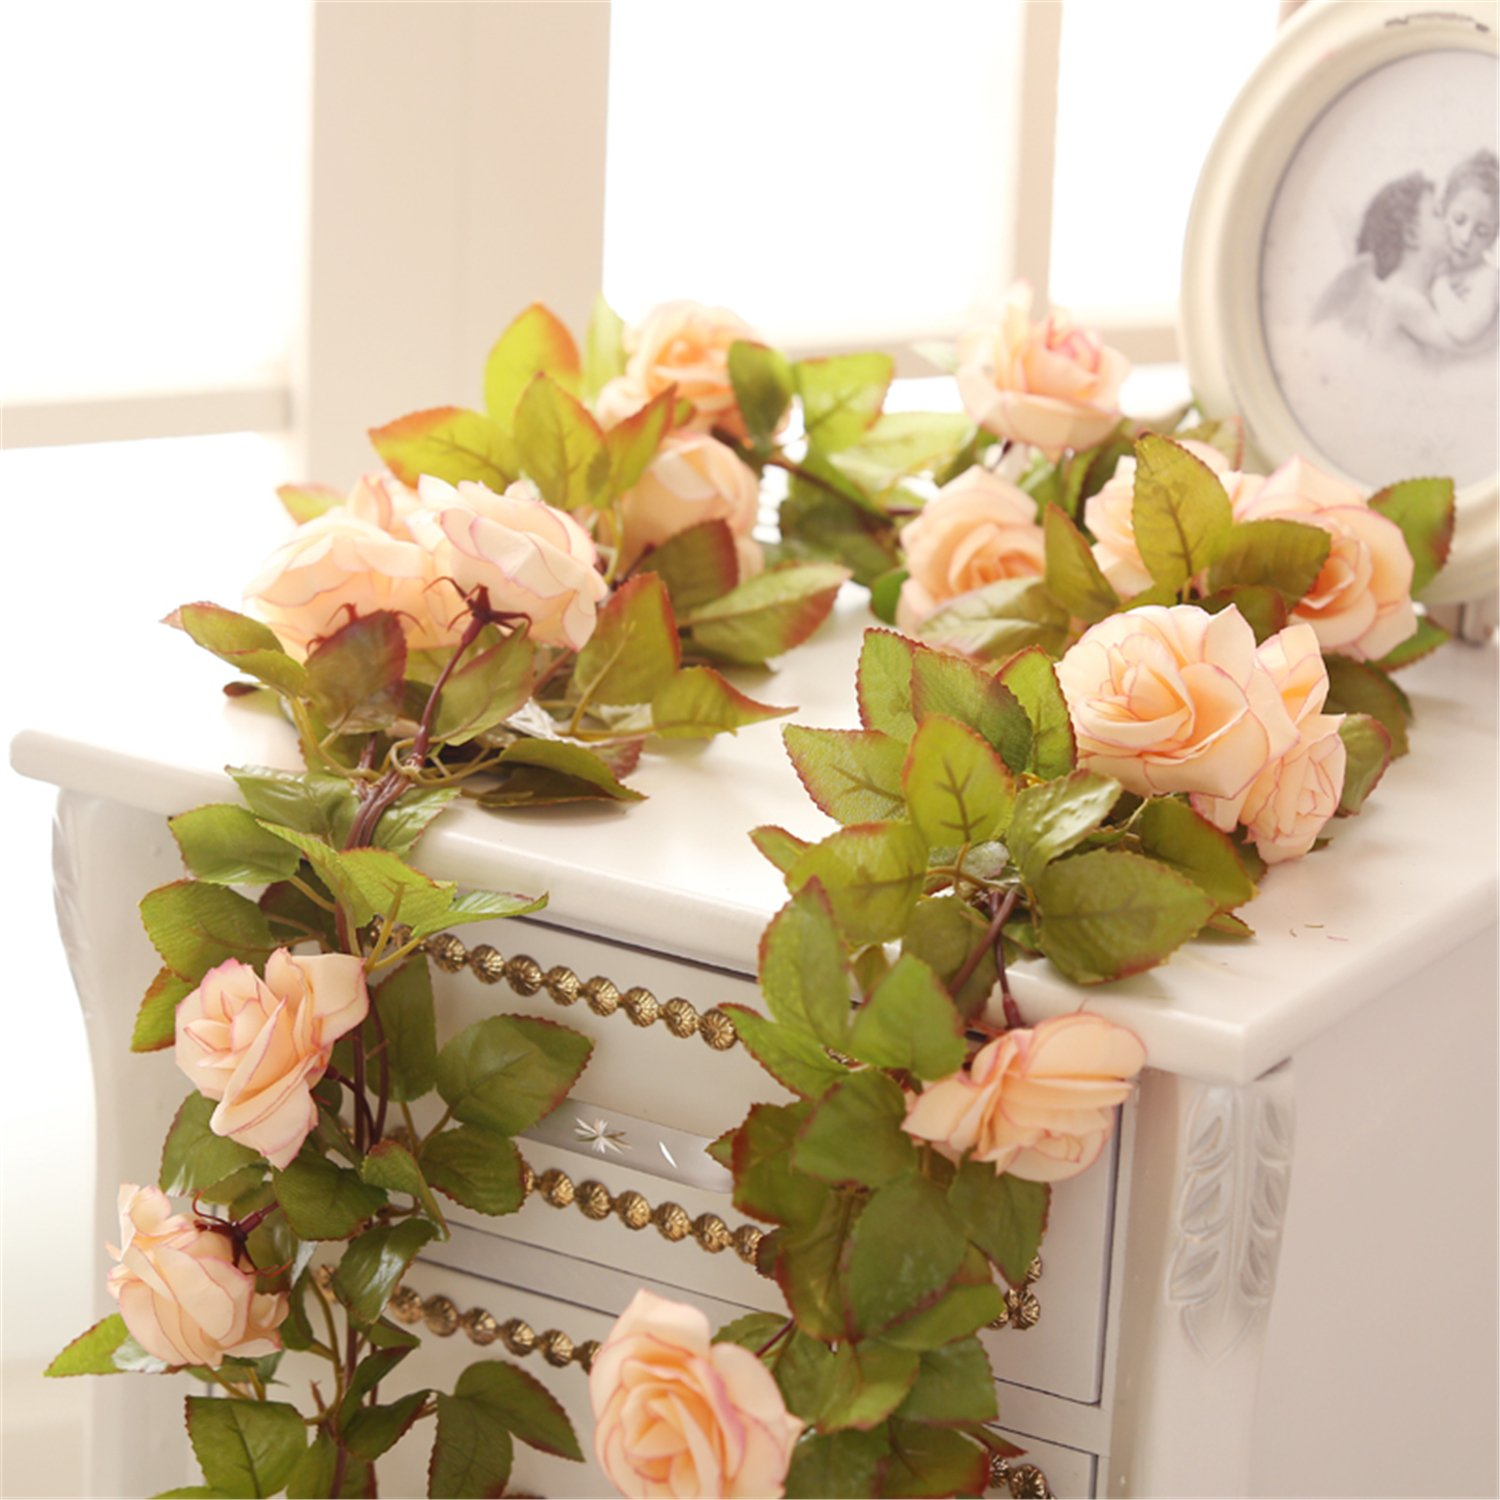 Felice Arts 2 Pack 11 Heads 7.2 Ft/pc Artificial Silk Fake Flowers Autumn Rose Vine Realistic Hanging Silk Rose Plants Wedding Home Party Arch Decor (Champagne)